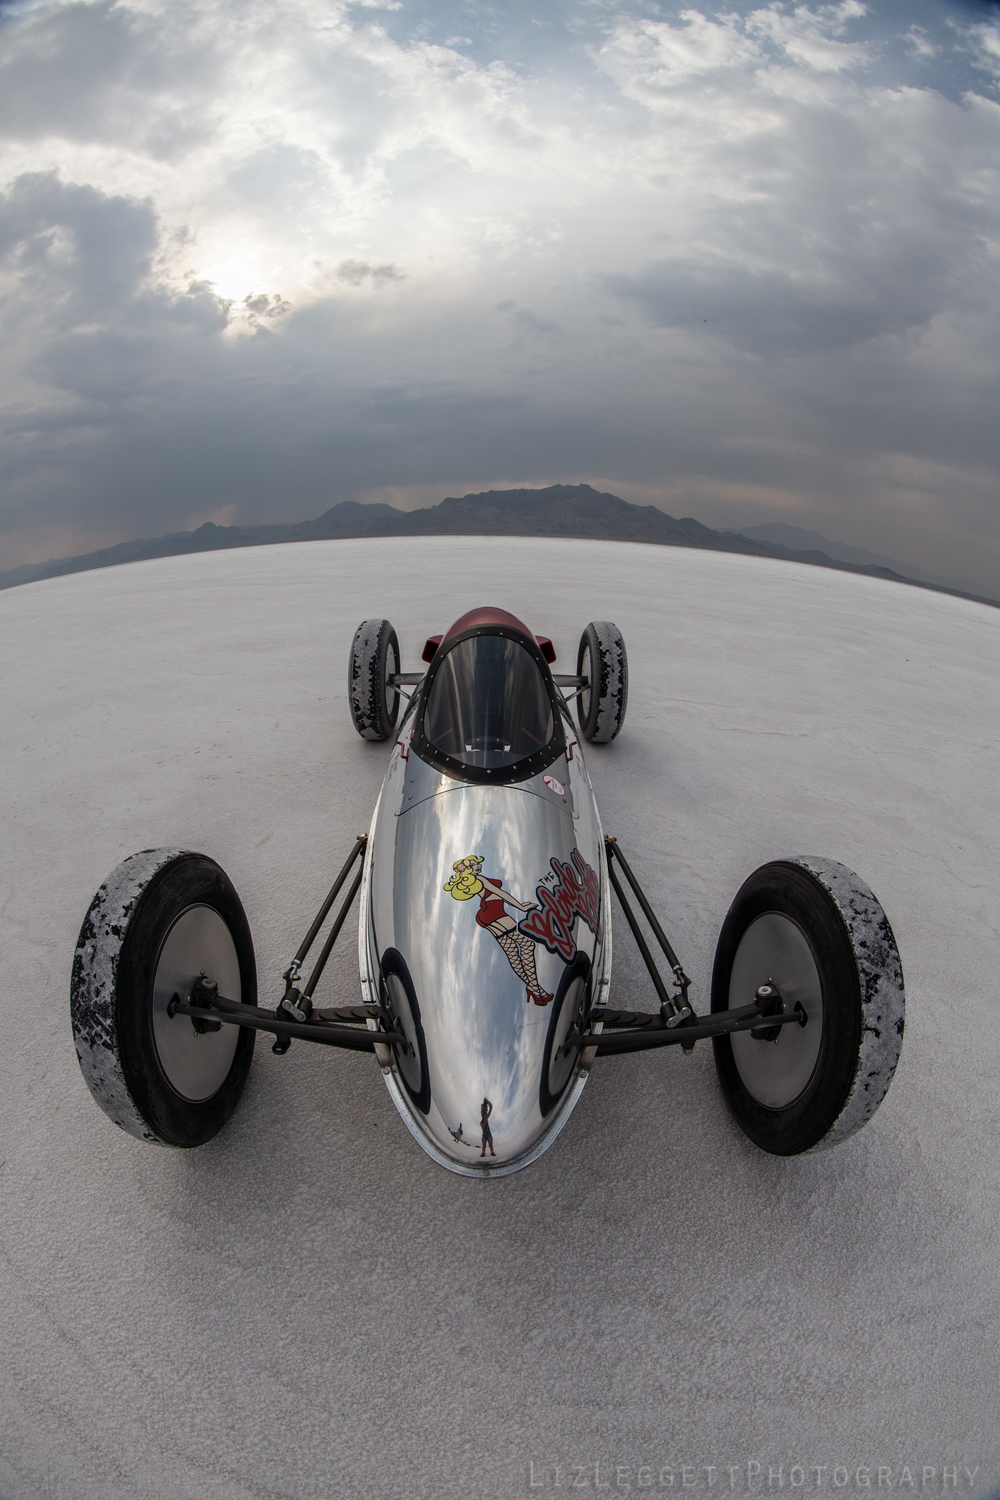 liz_leggett_photography_images_for_bonneville_speed_buffing-9893.jpg